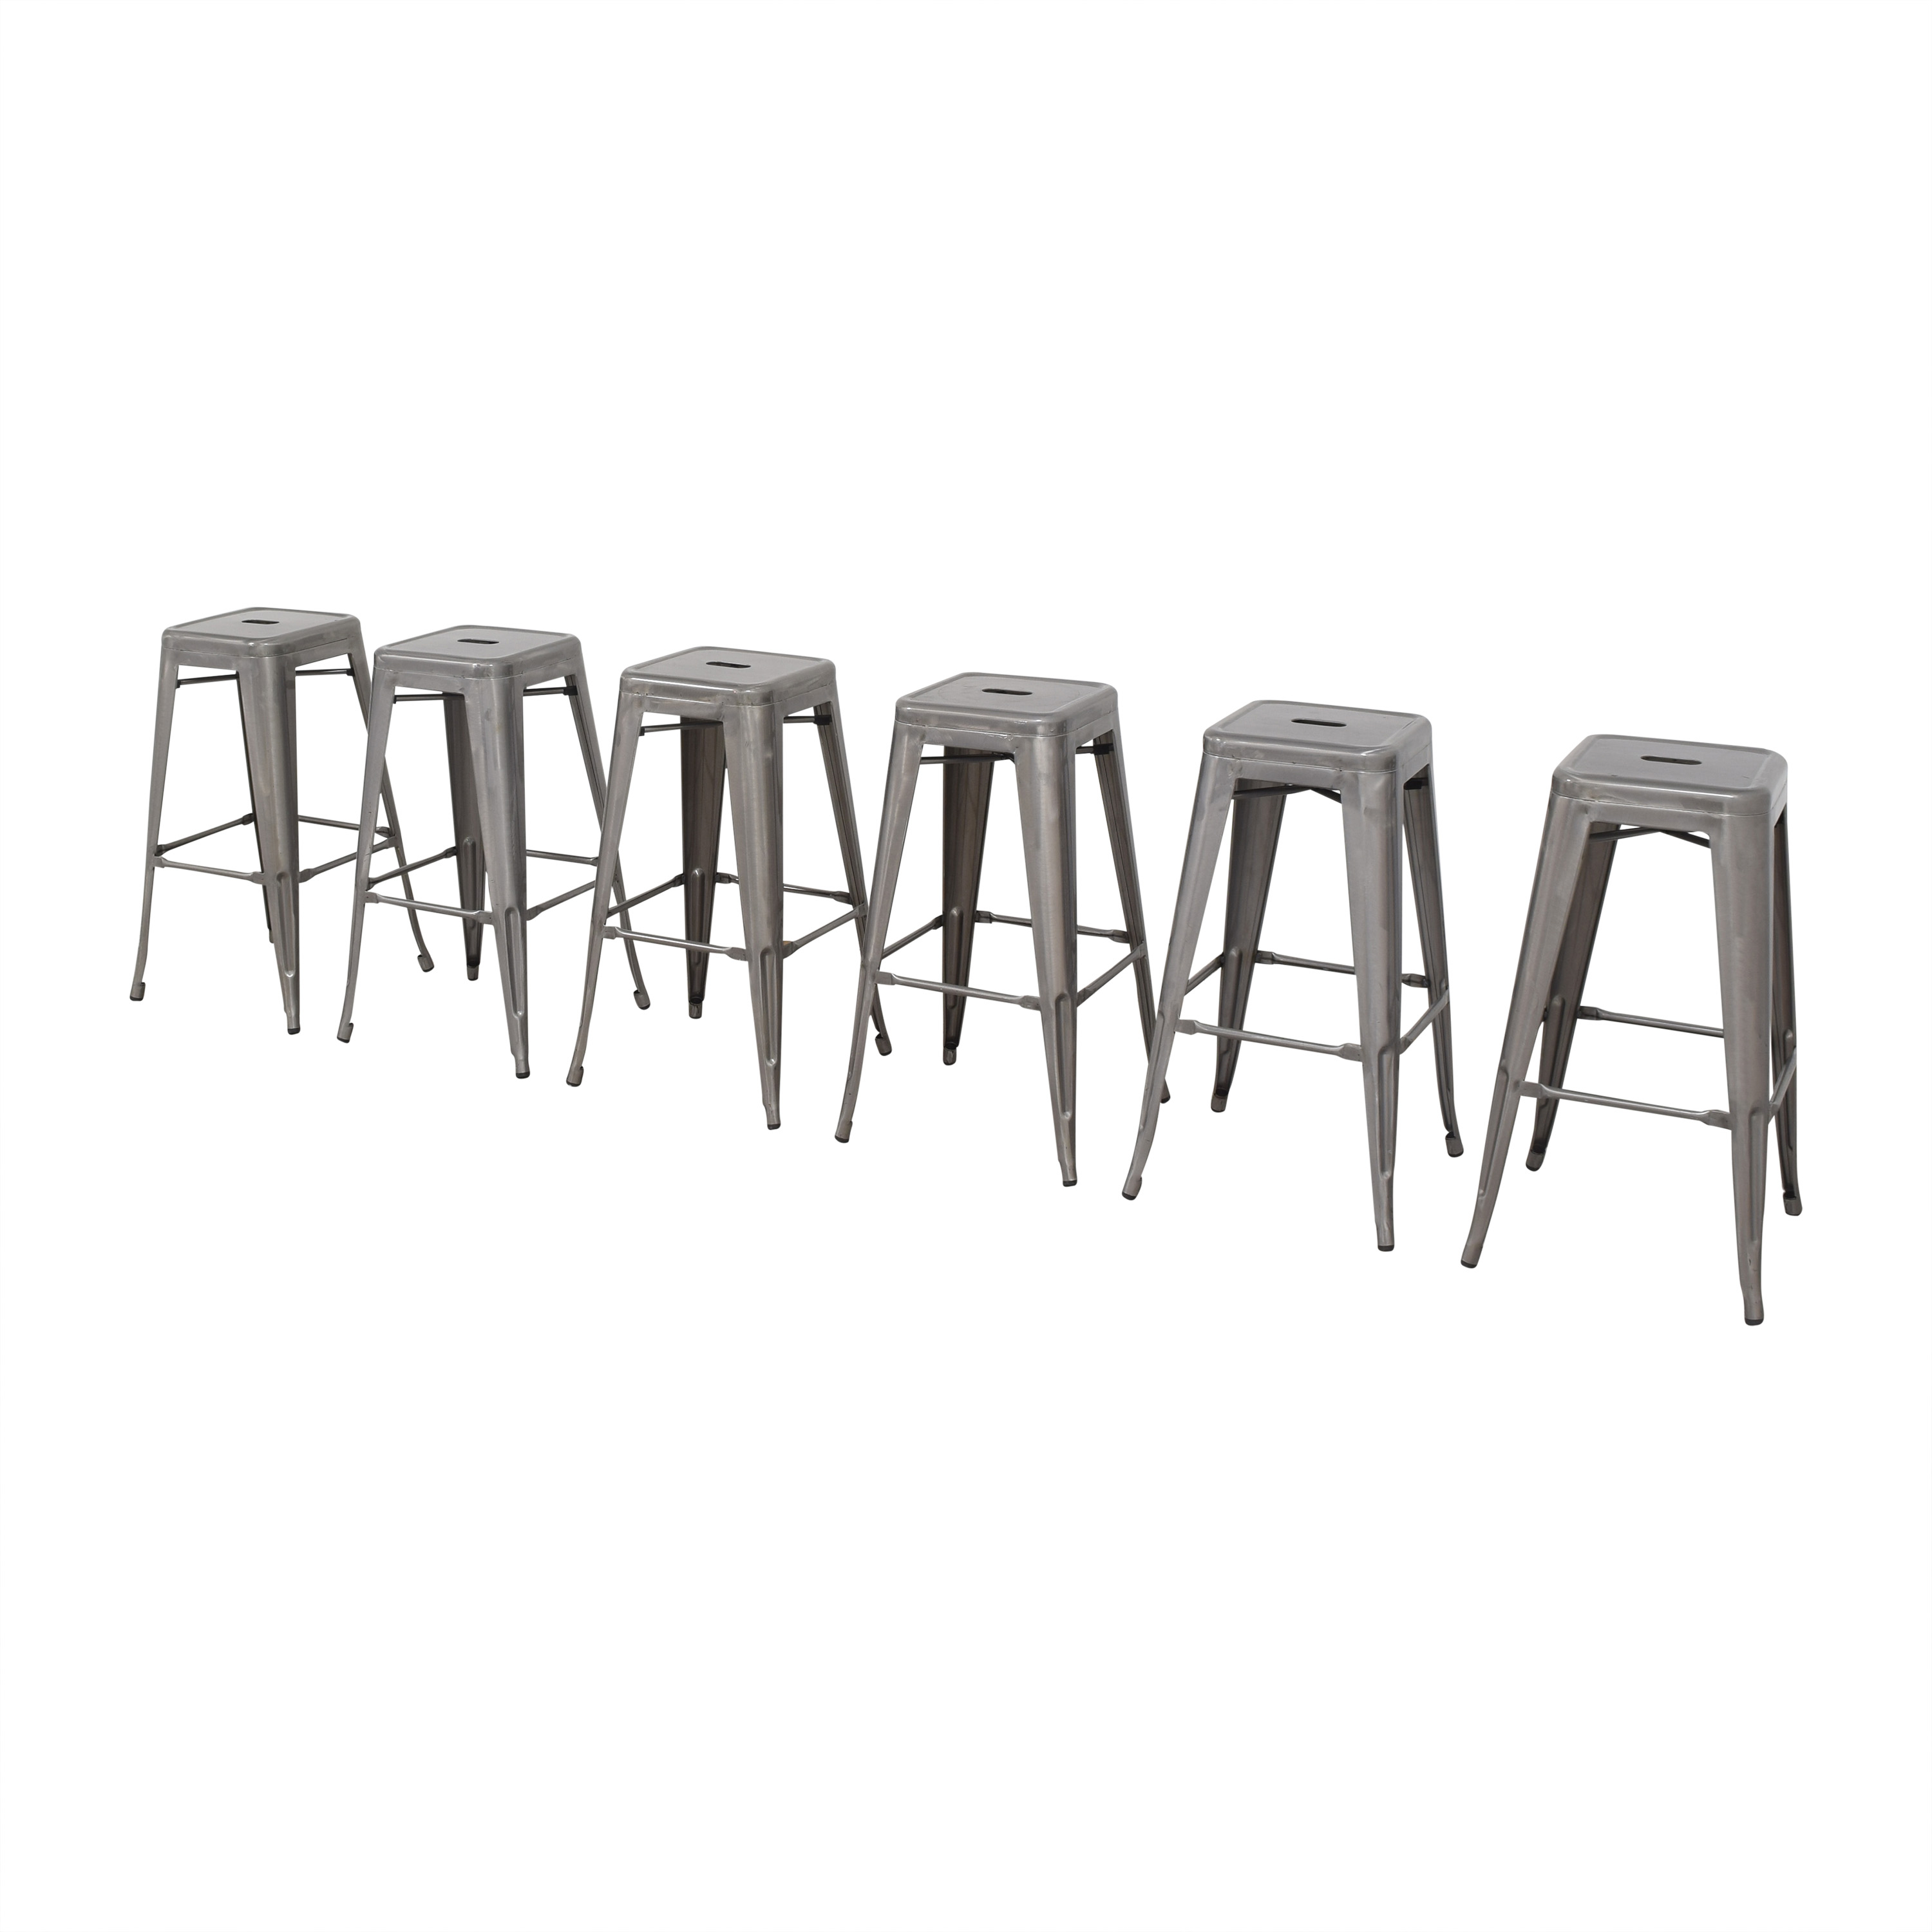 buy Adeco Trading Modern Bar Stools Adeco Trading Chairs